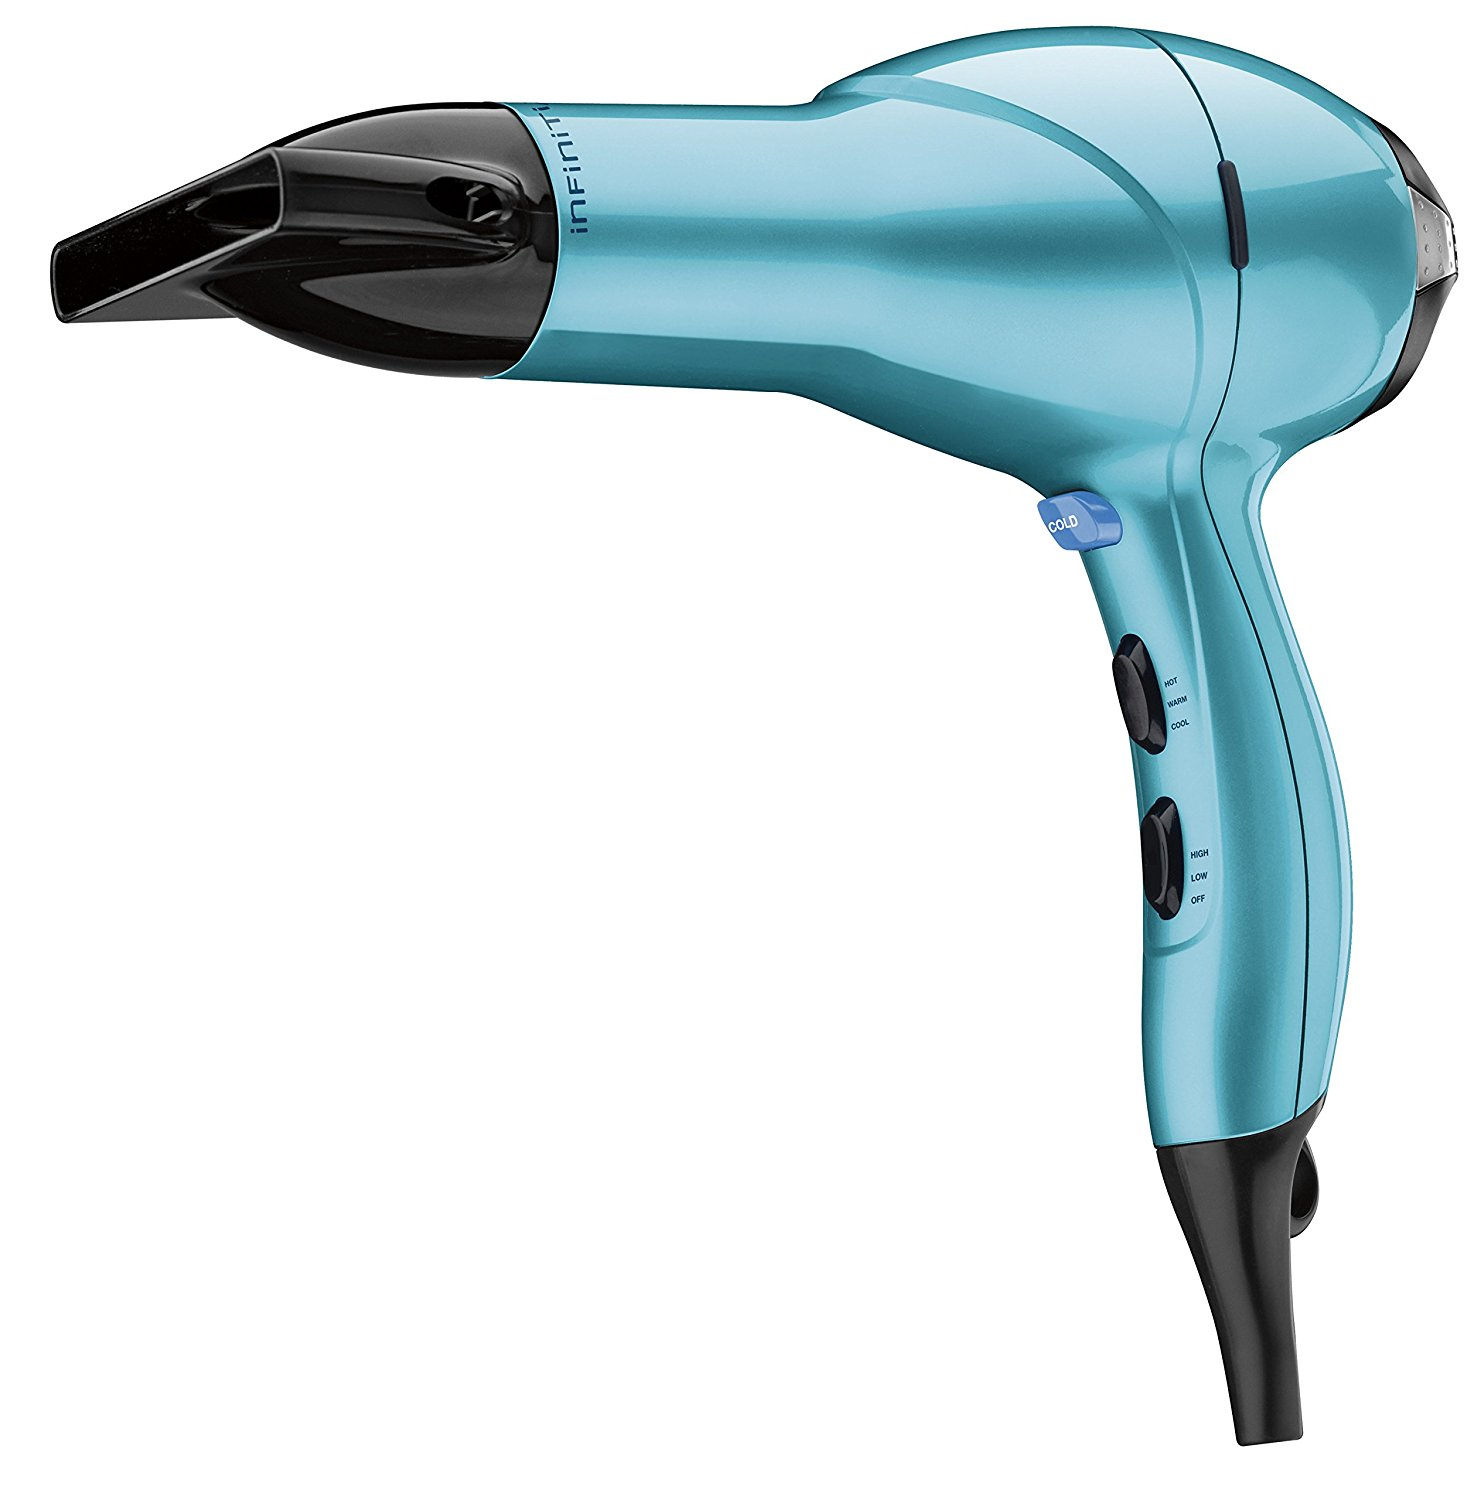 Best Hair Dryer Under 50